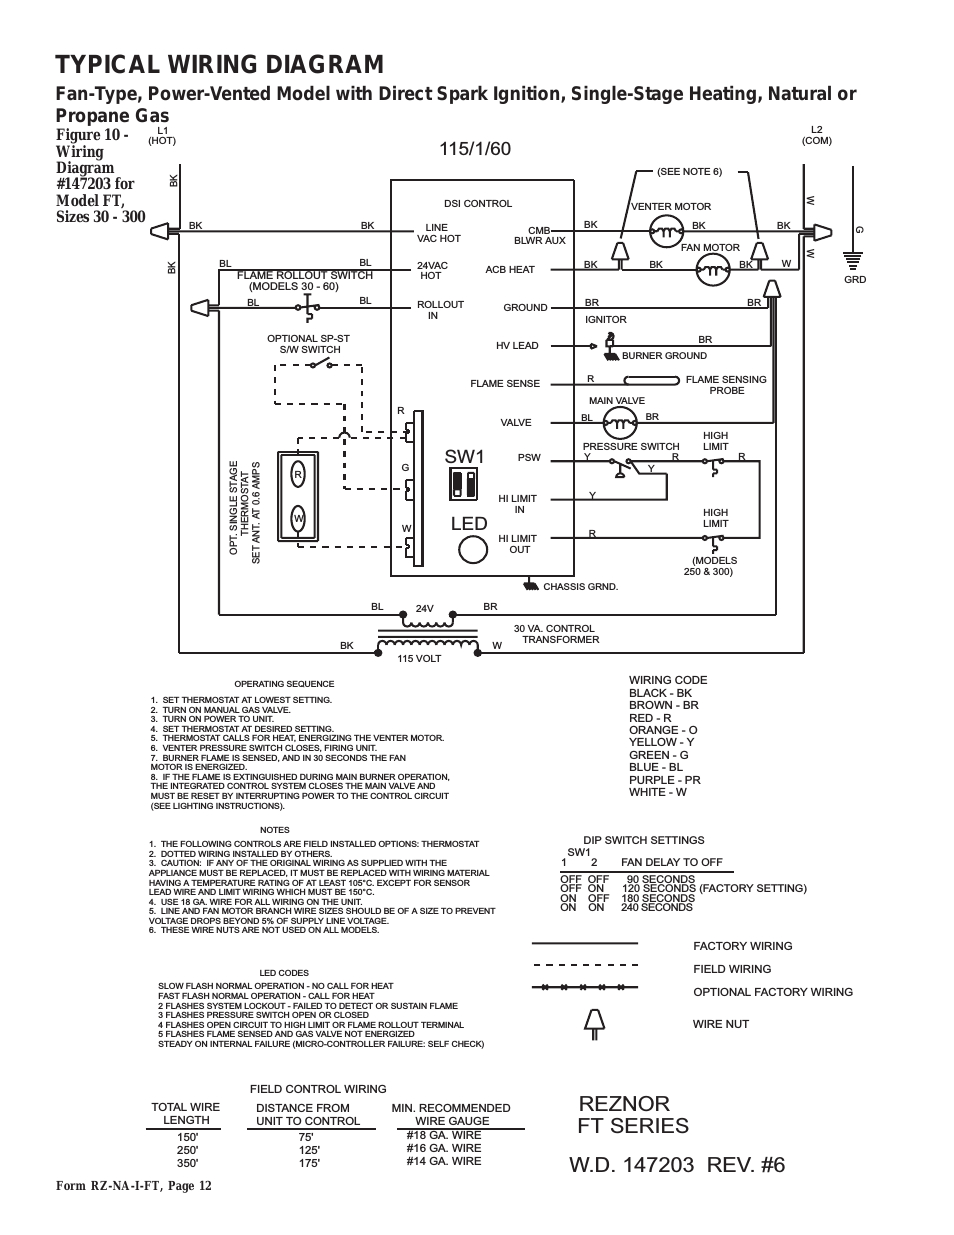 modine unit heater wiring diagram wiring diagram \u2022 30 000 btu modine wiring-diagram modine furnace wiring diagram trusted wiring diagrams u2022 rh weneedradio org modine gas unit heater installation